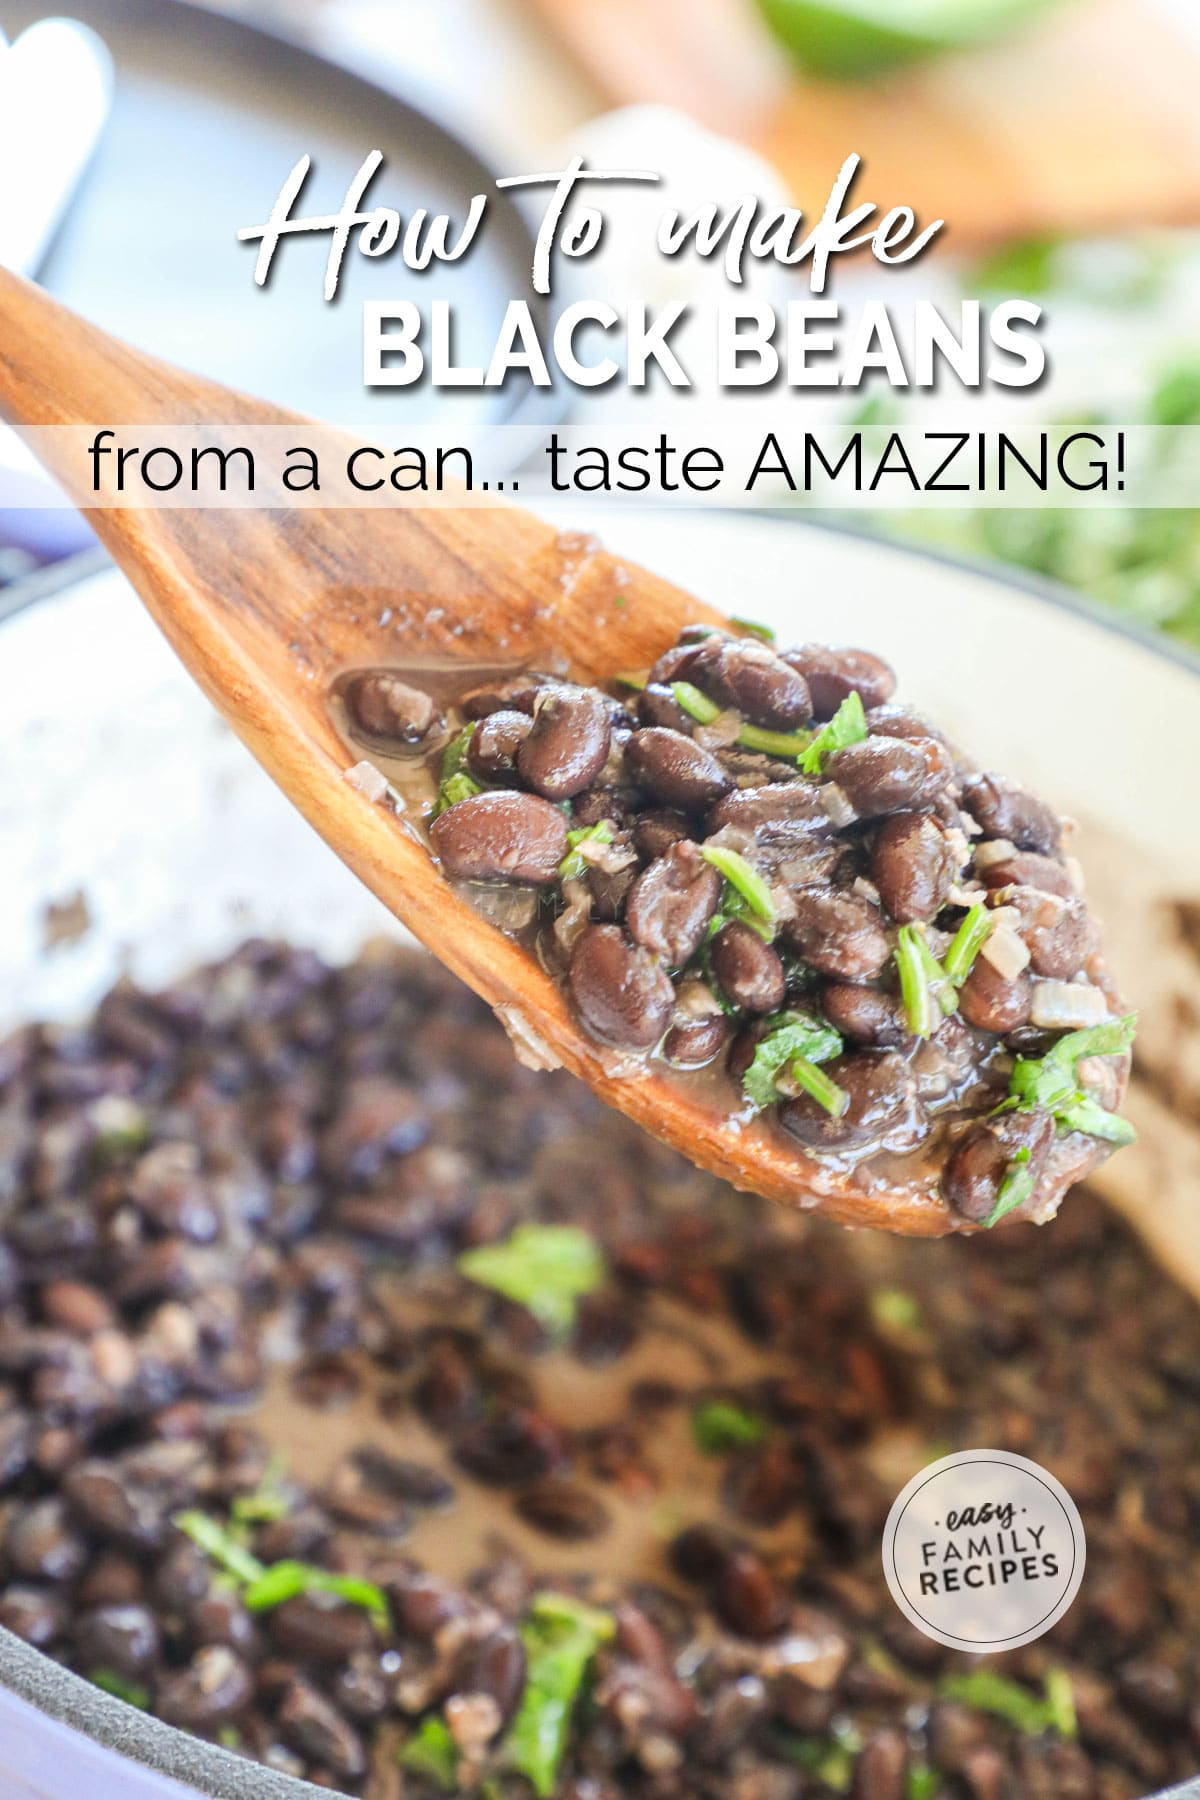 Spoon lifting canned black beans seasoned with cilantro from pot